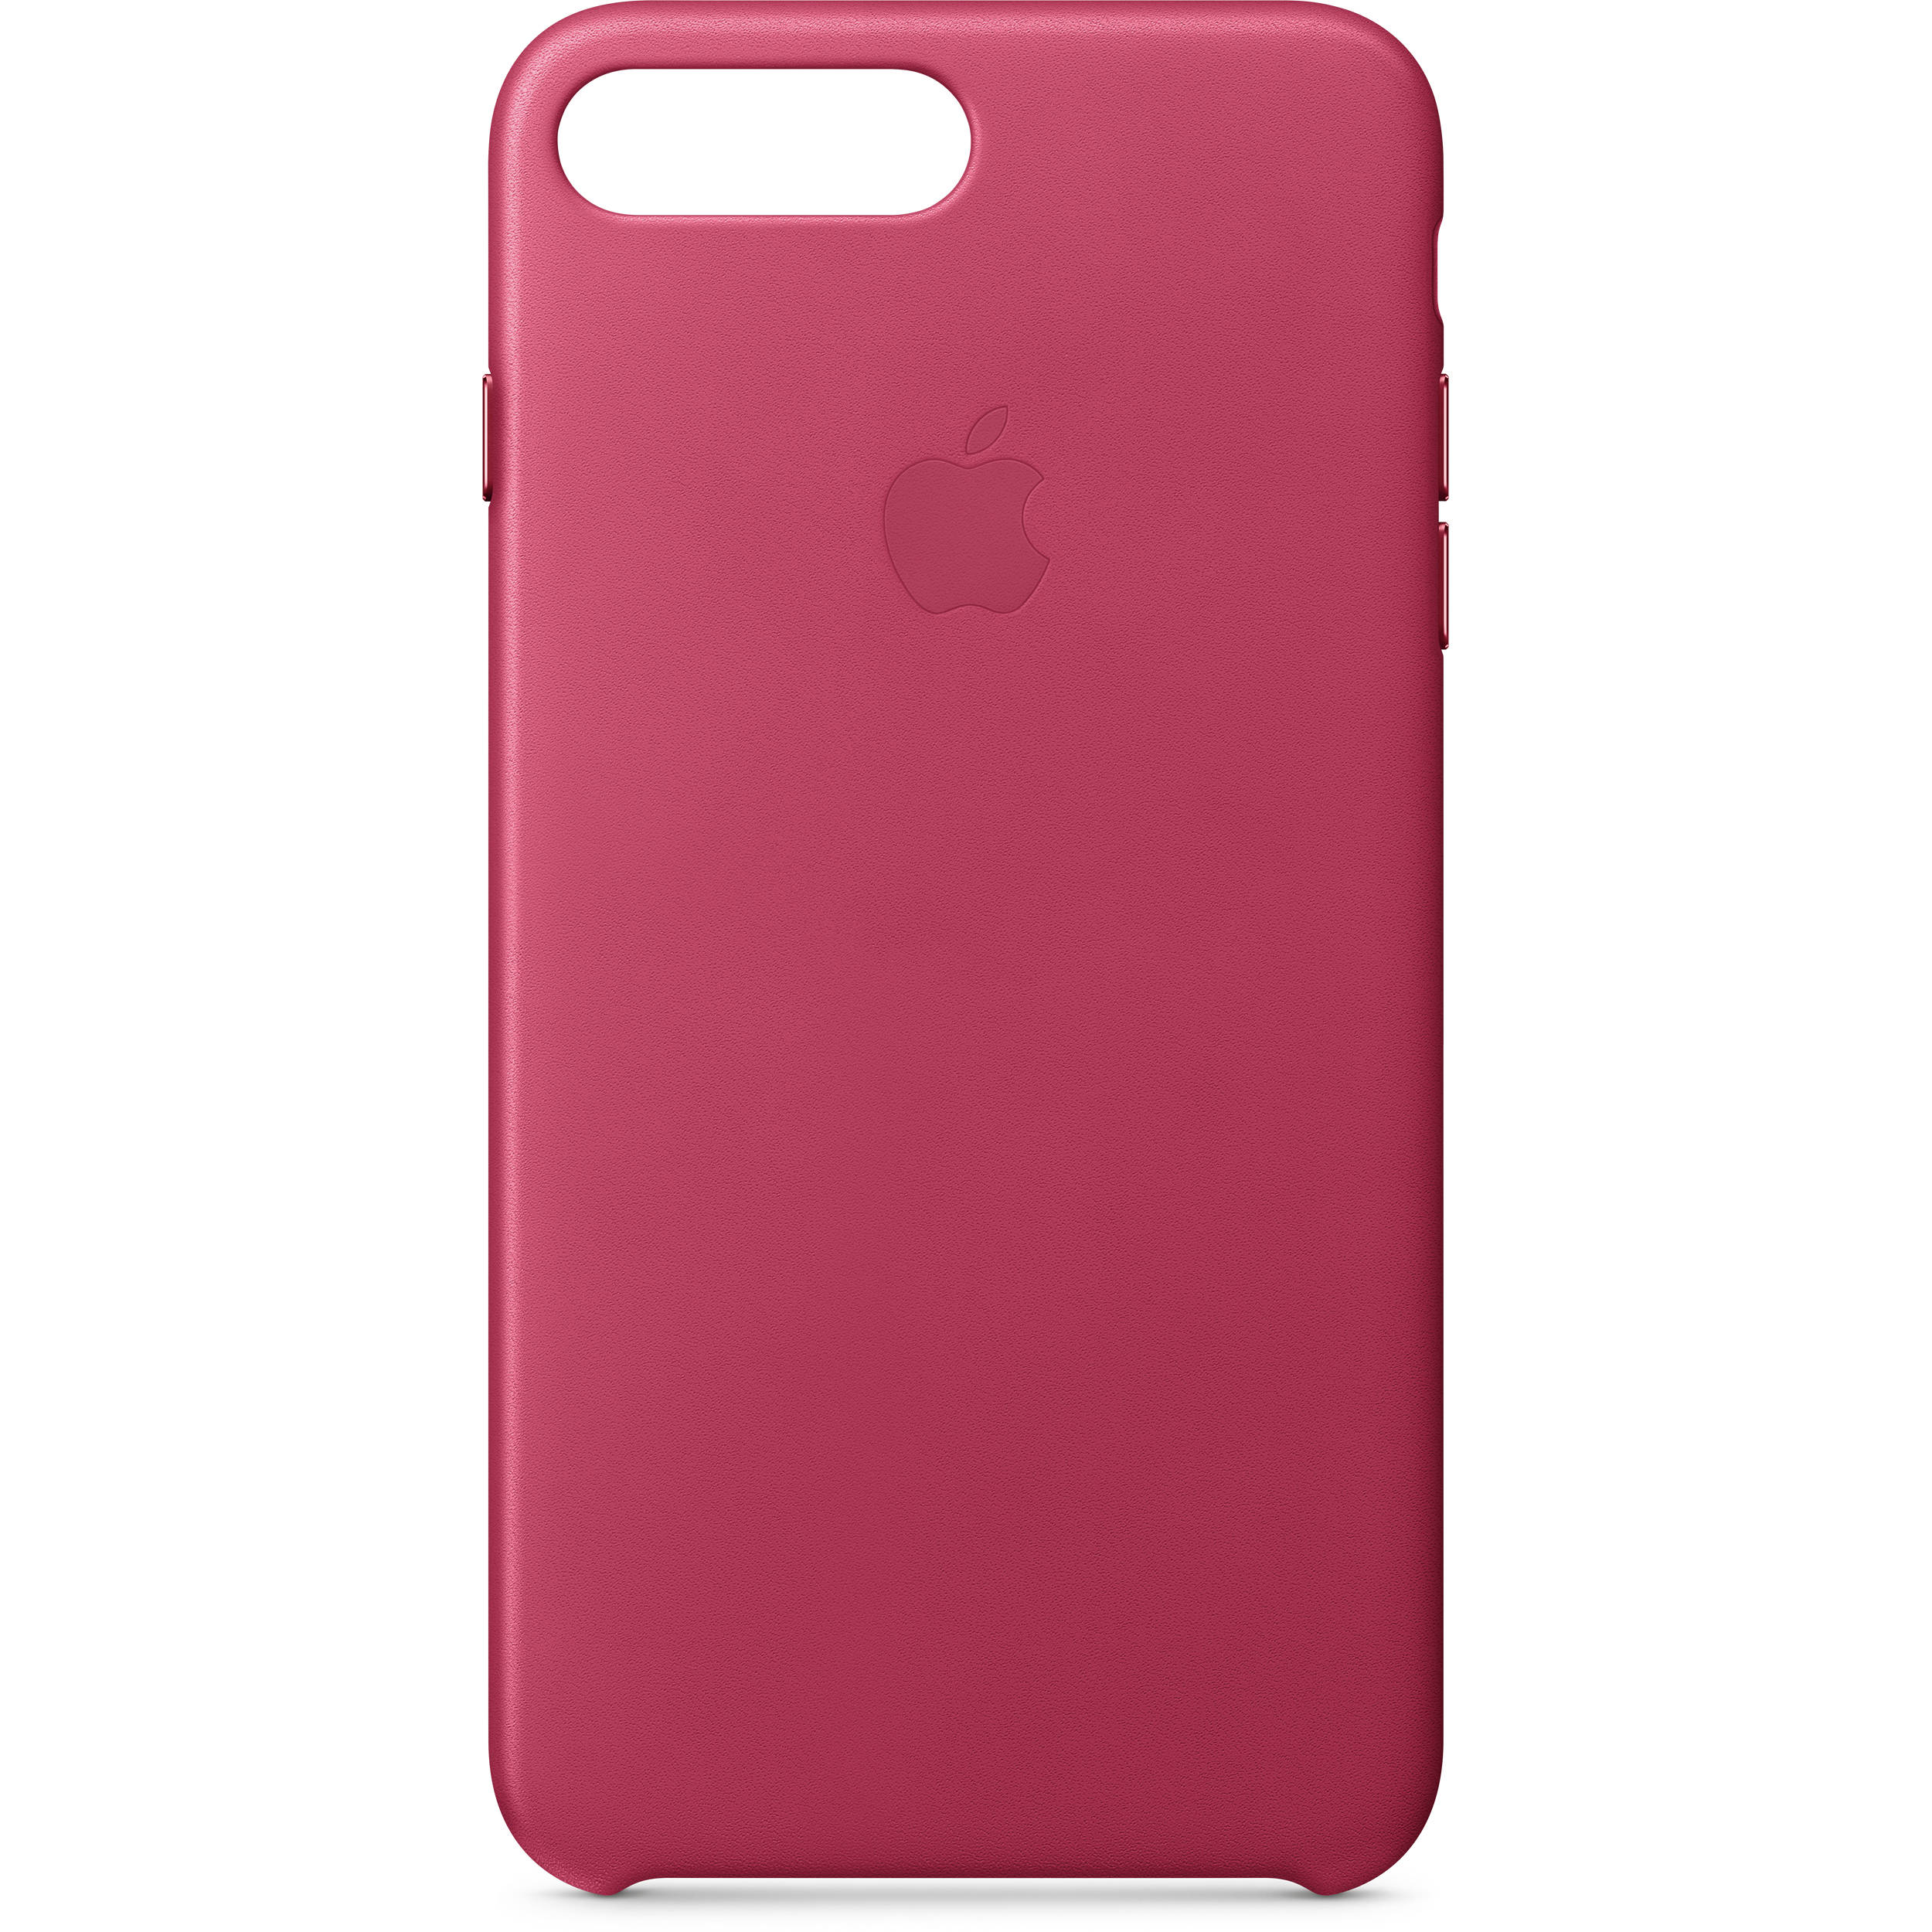 apple iphone 7 plus case pink